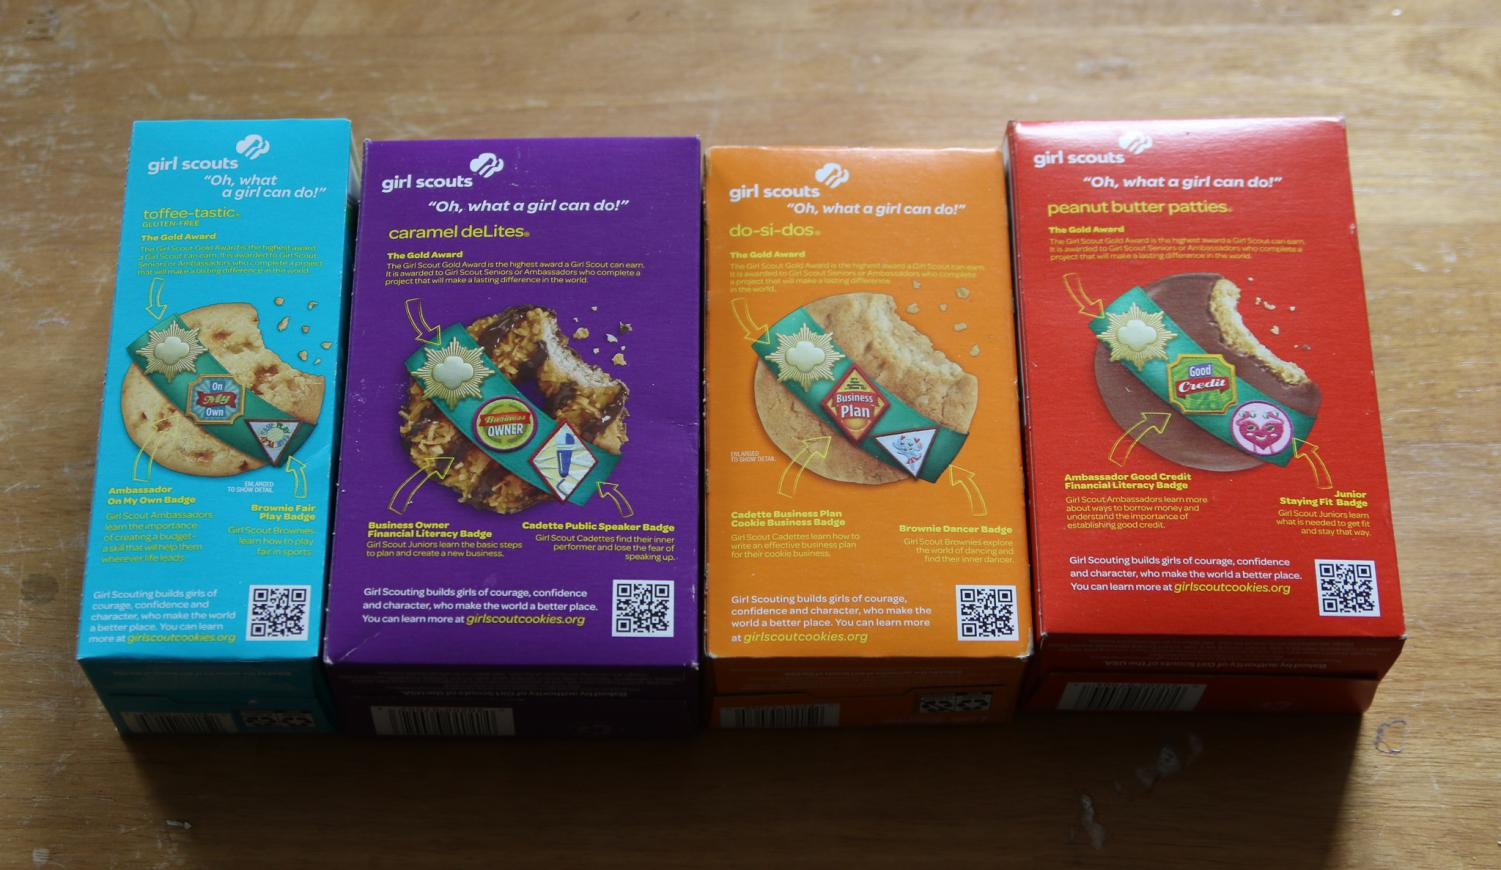 Girl Scout cookies vary from region to region based on their names, their appearances, their tastes and even their recipes. Two different companies make the cookies for all of the U.S.